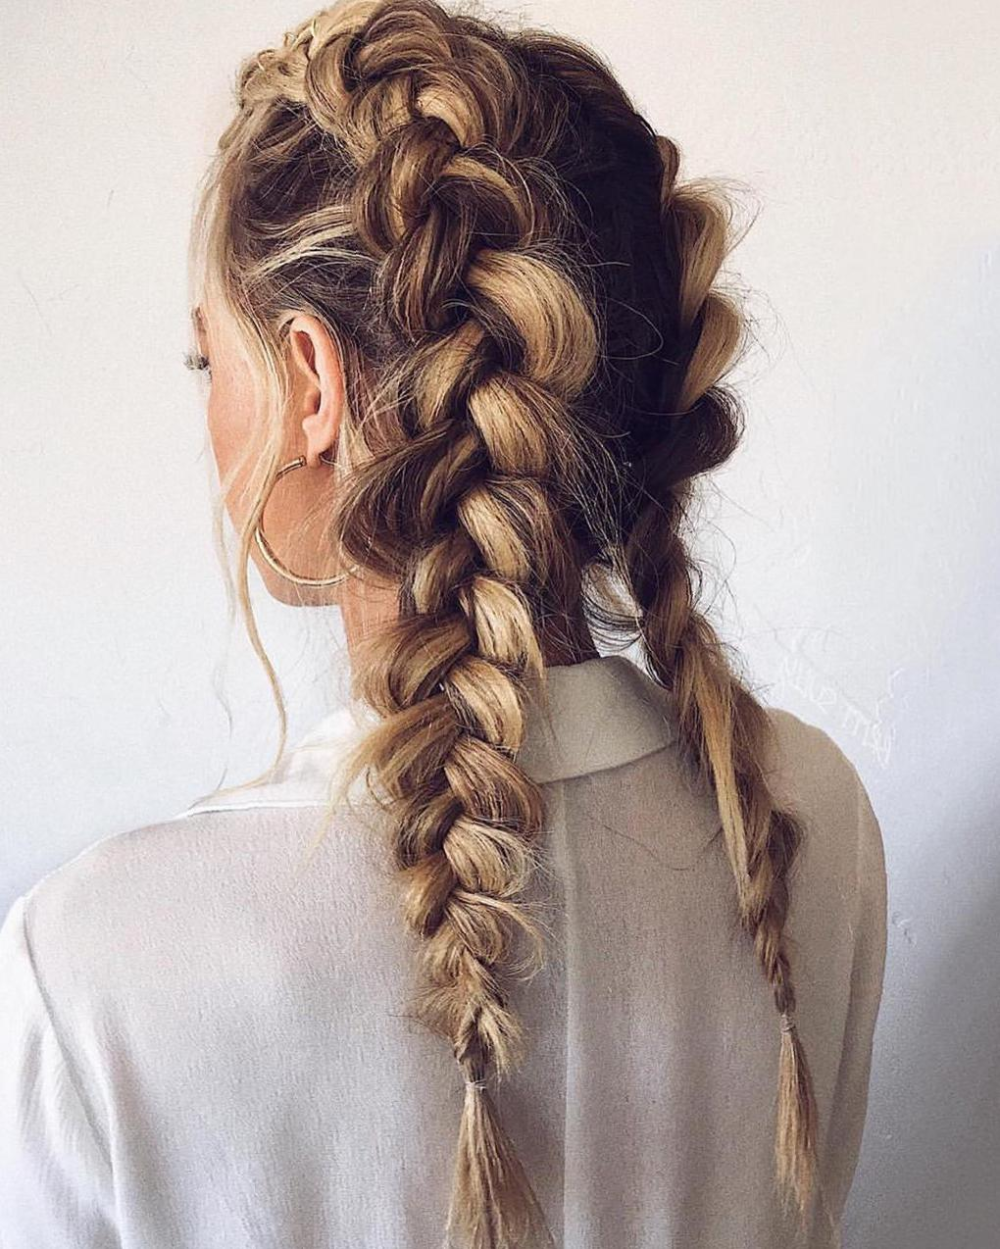 50 Trendy Double Braid Hairstyle Ideas To Keep You Cool Braids For Long Hair Long Hair Styles Hair Styles